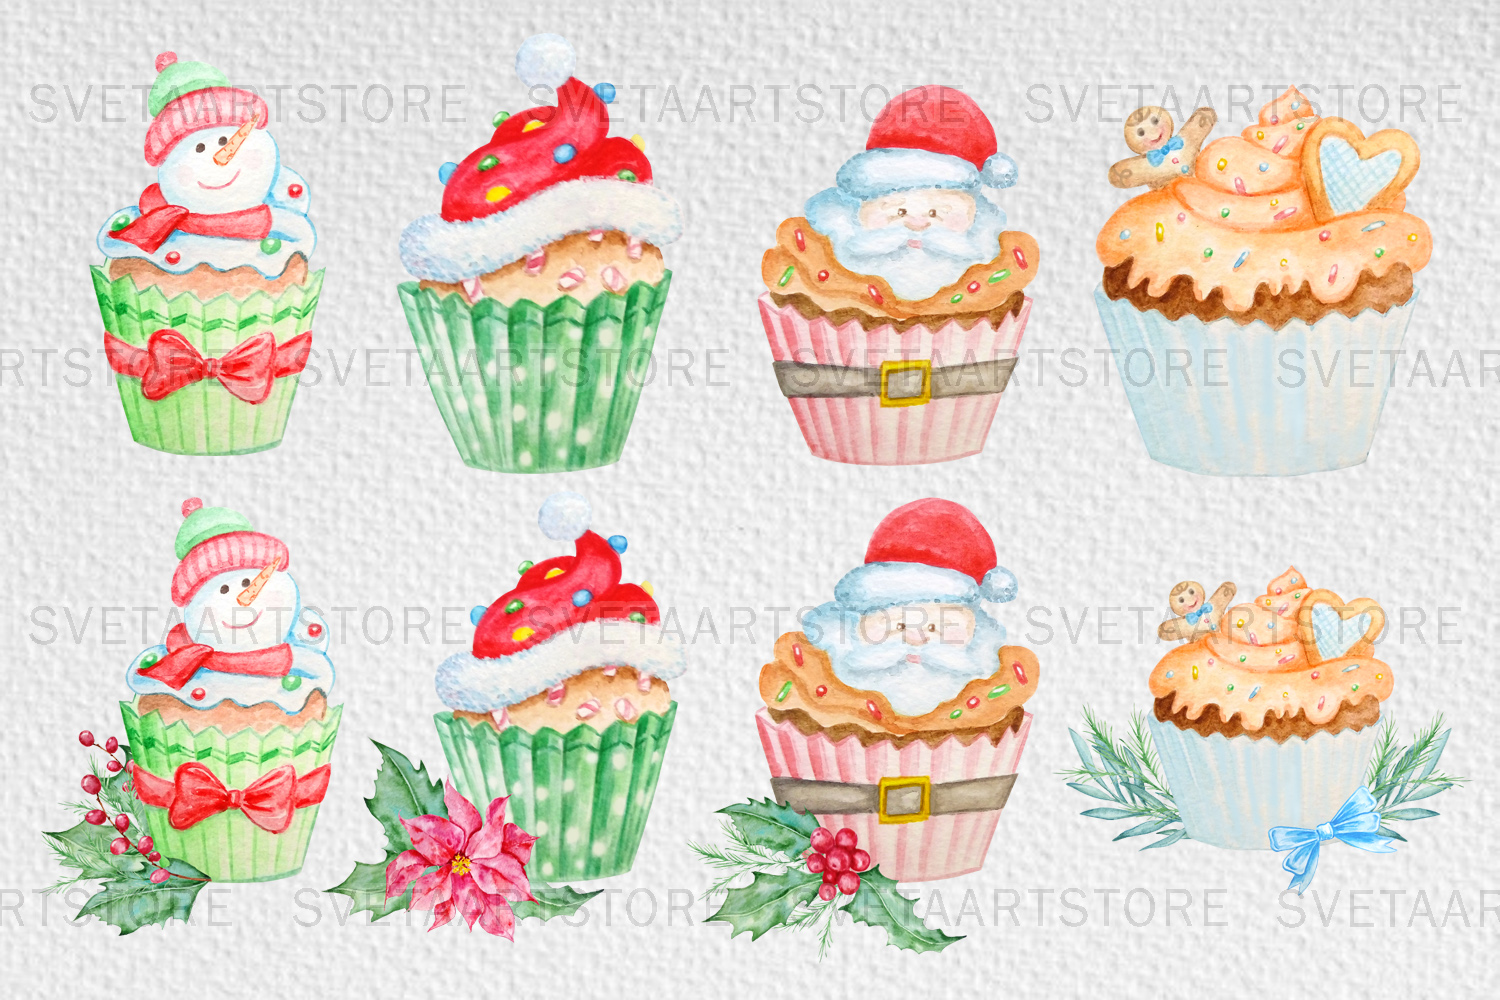 Christmas cupcakes clipart, watercolor cake example image 4